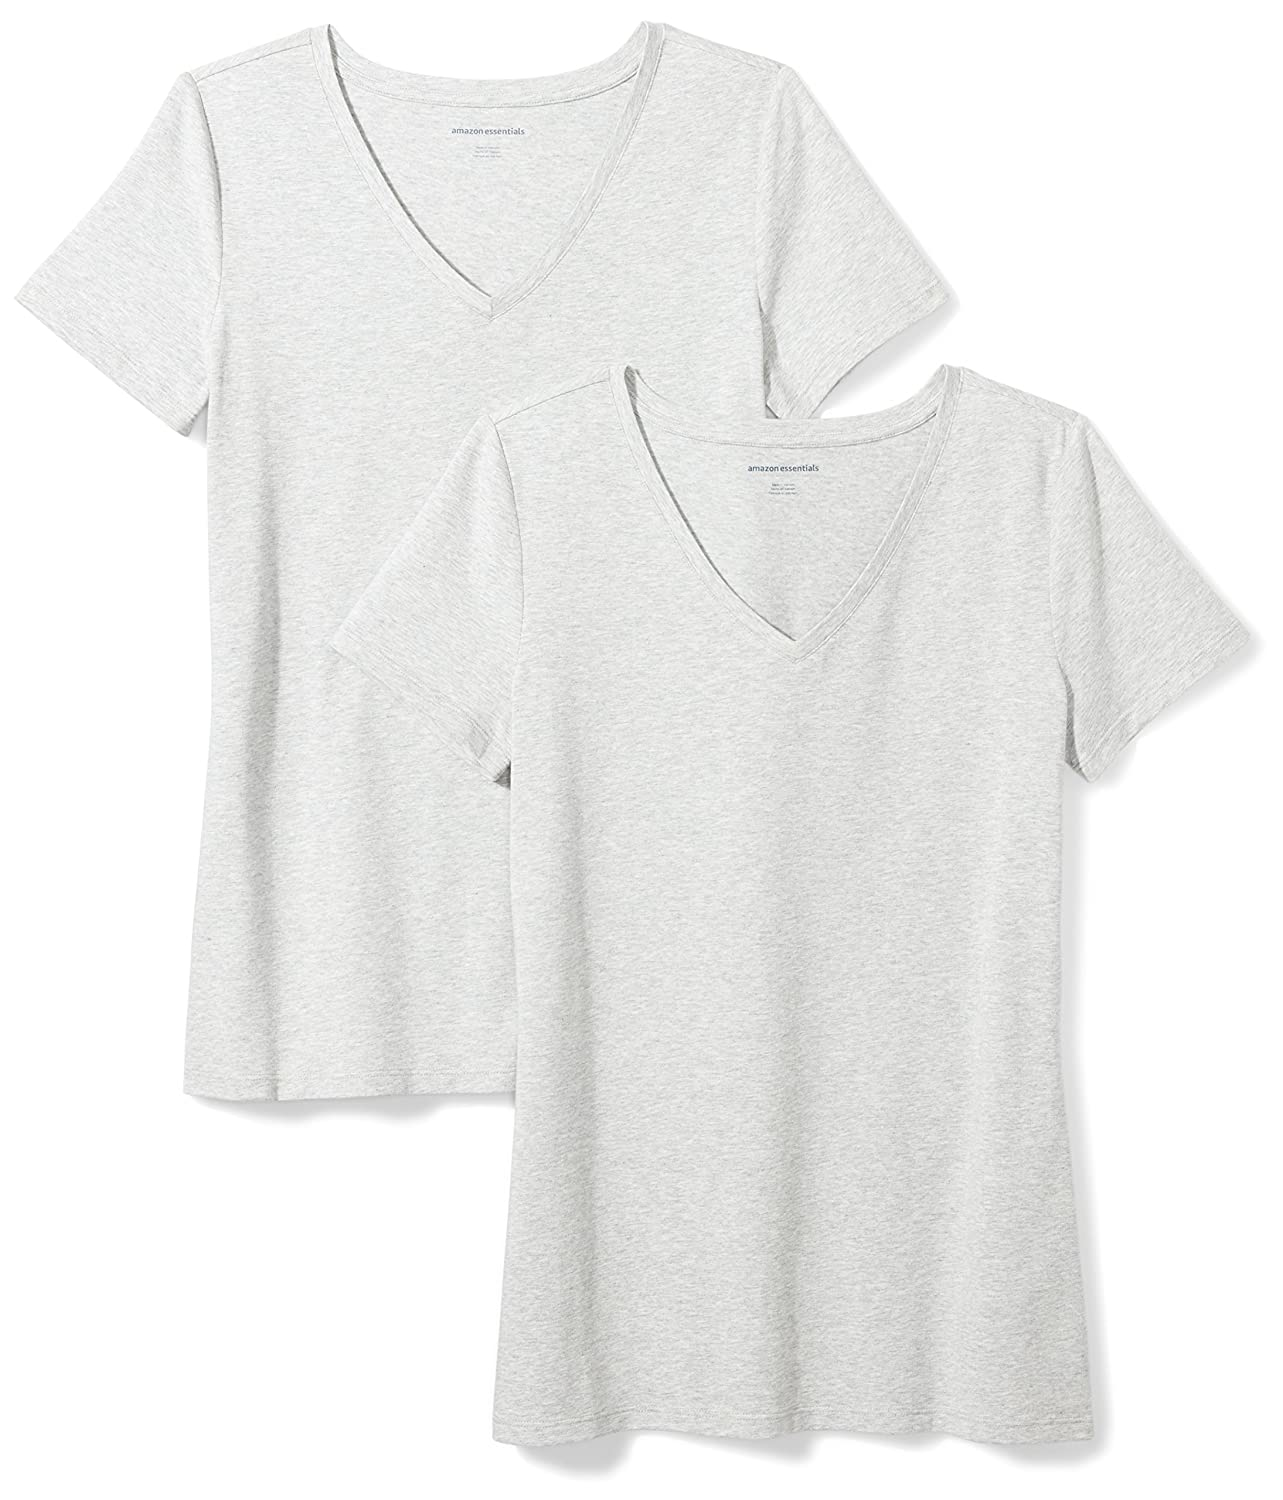 Amazon Essentials Womens Standard 2-Pack Short-Sleeve V-Neck Solid T-Shirt WAE45055SP18